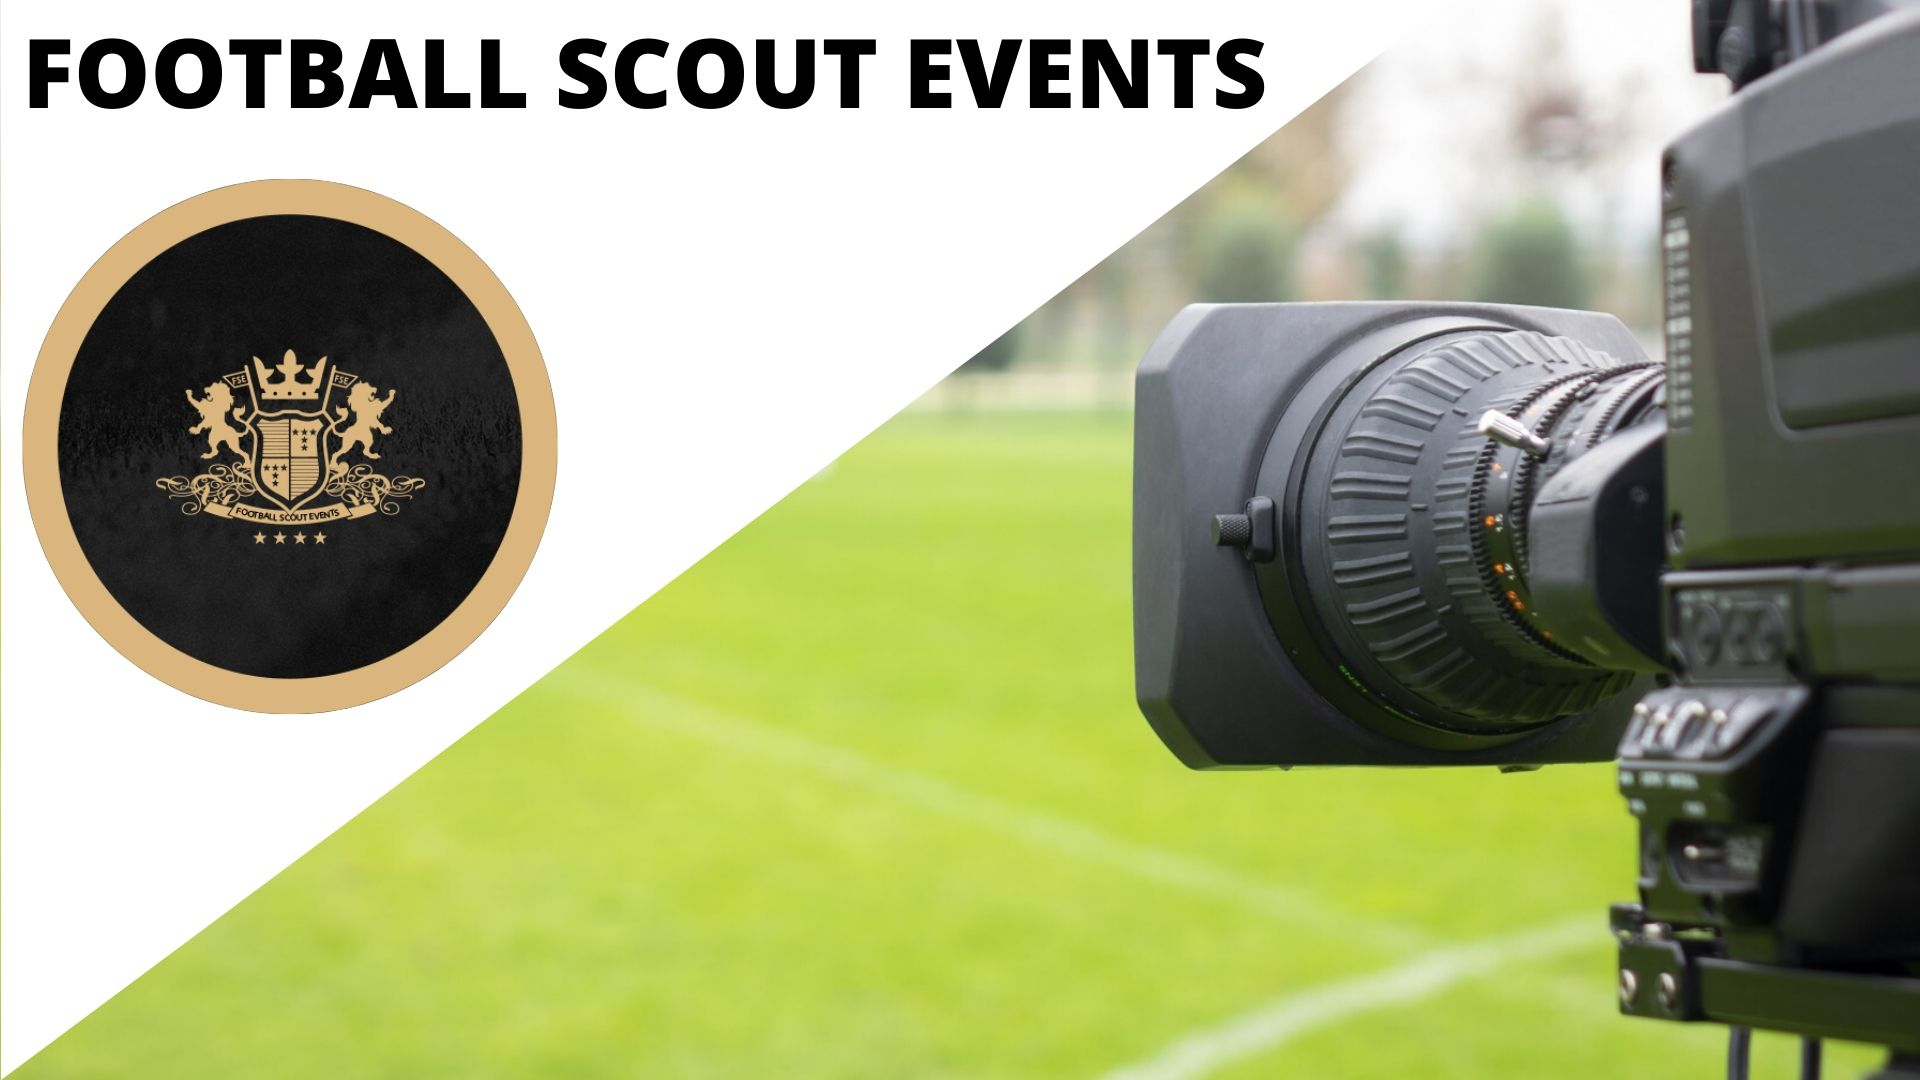 FOOTBALL-SCOUT-EVENTS-99-1